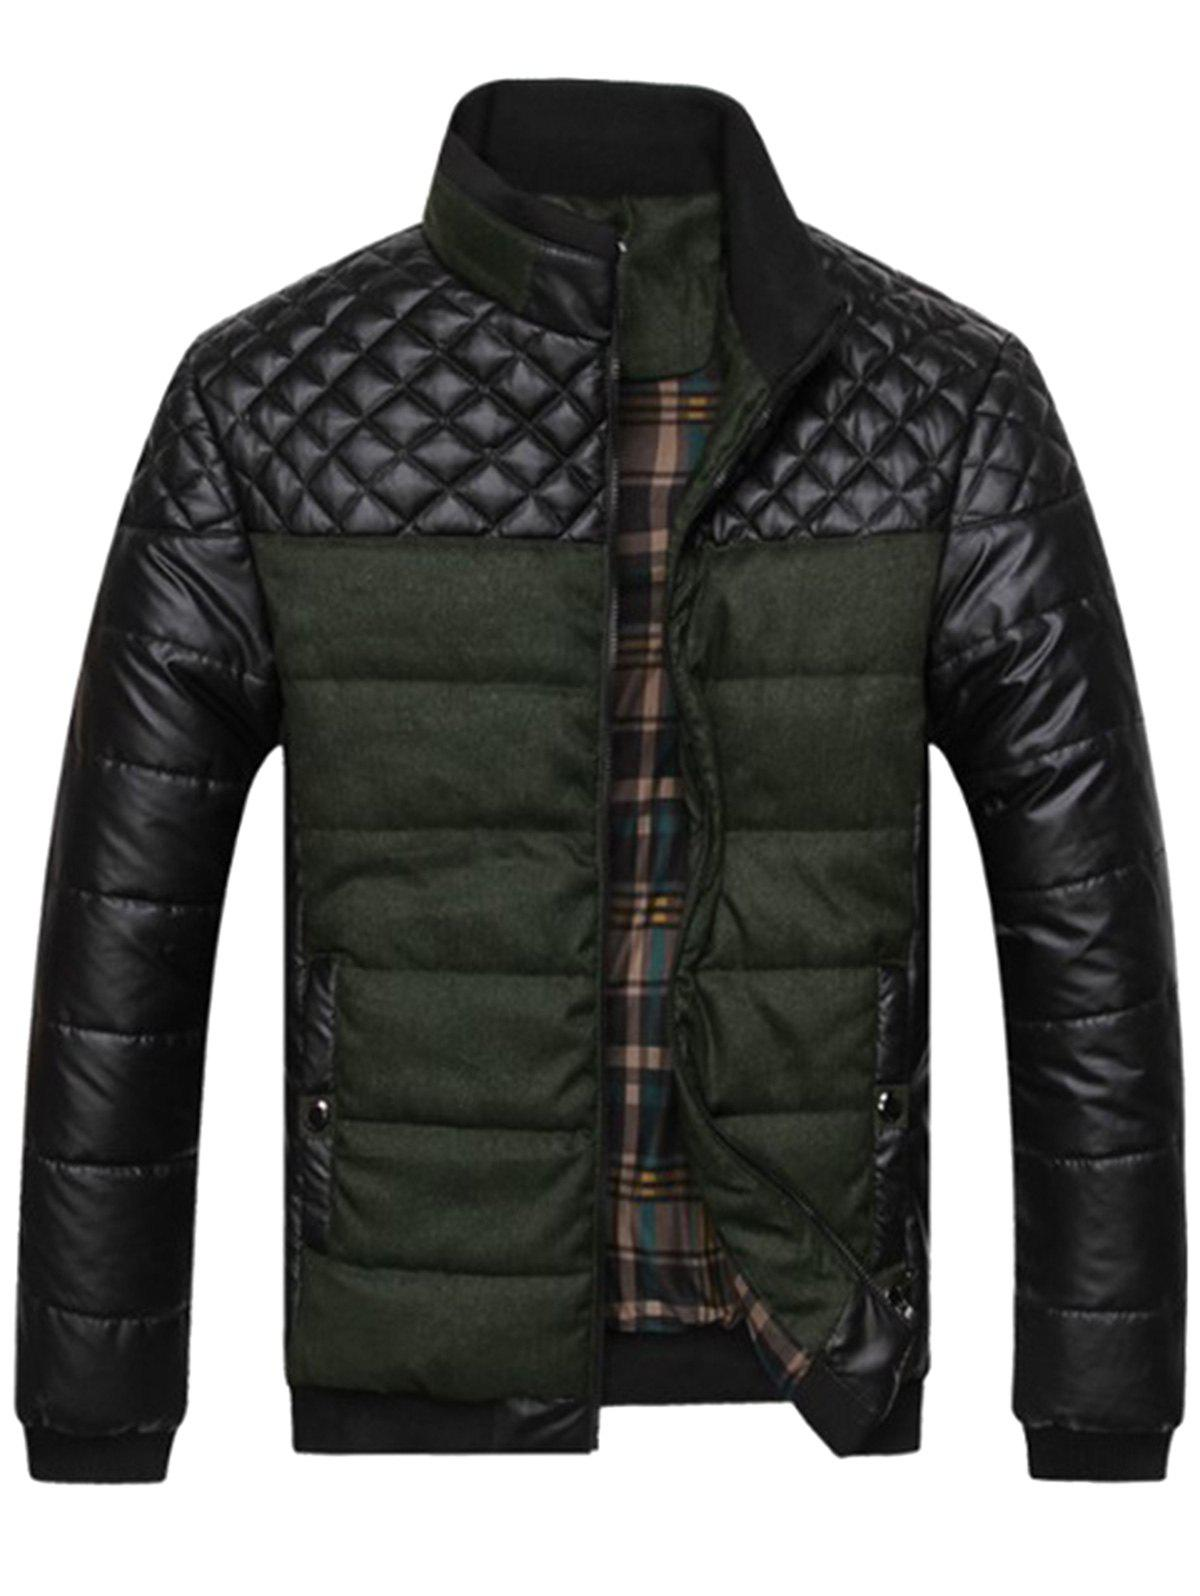 Argyle Color Block Artificial Leather Jacket - ARMY GREEN XL